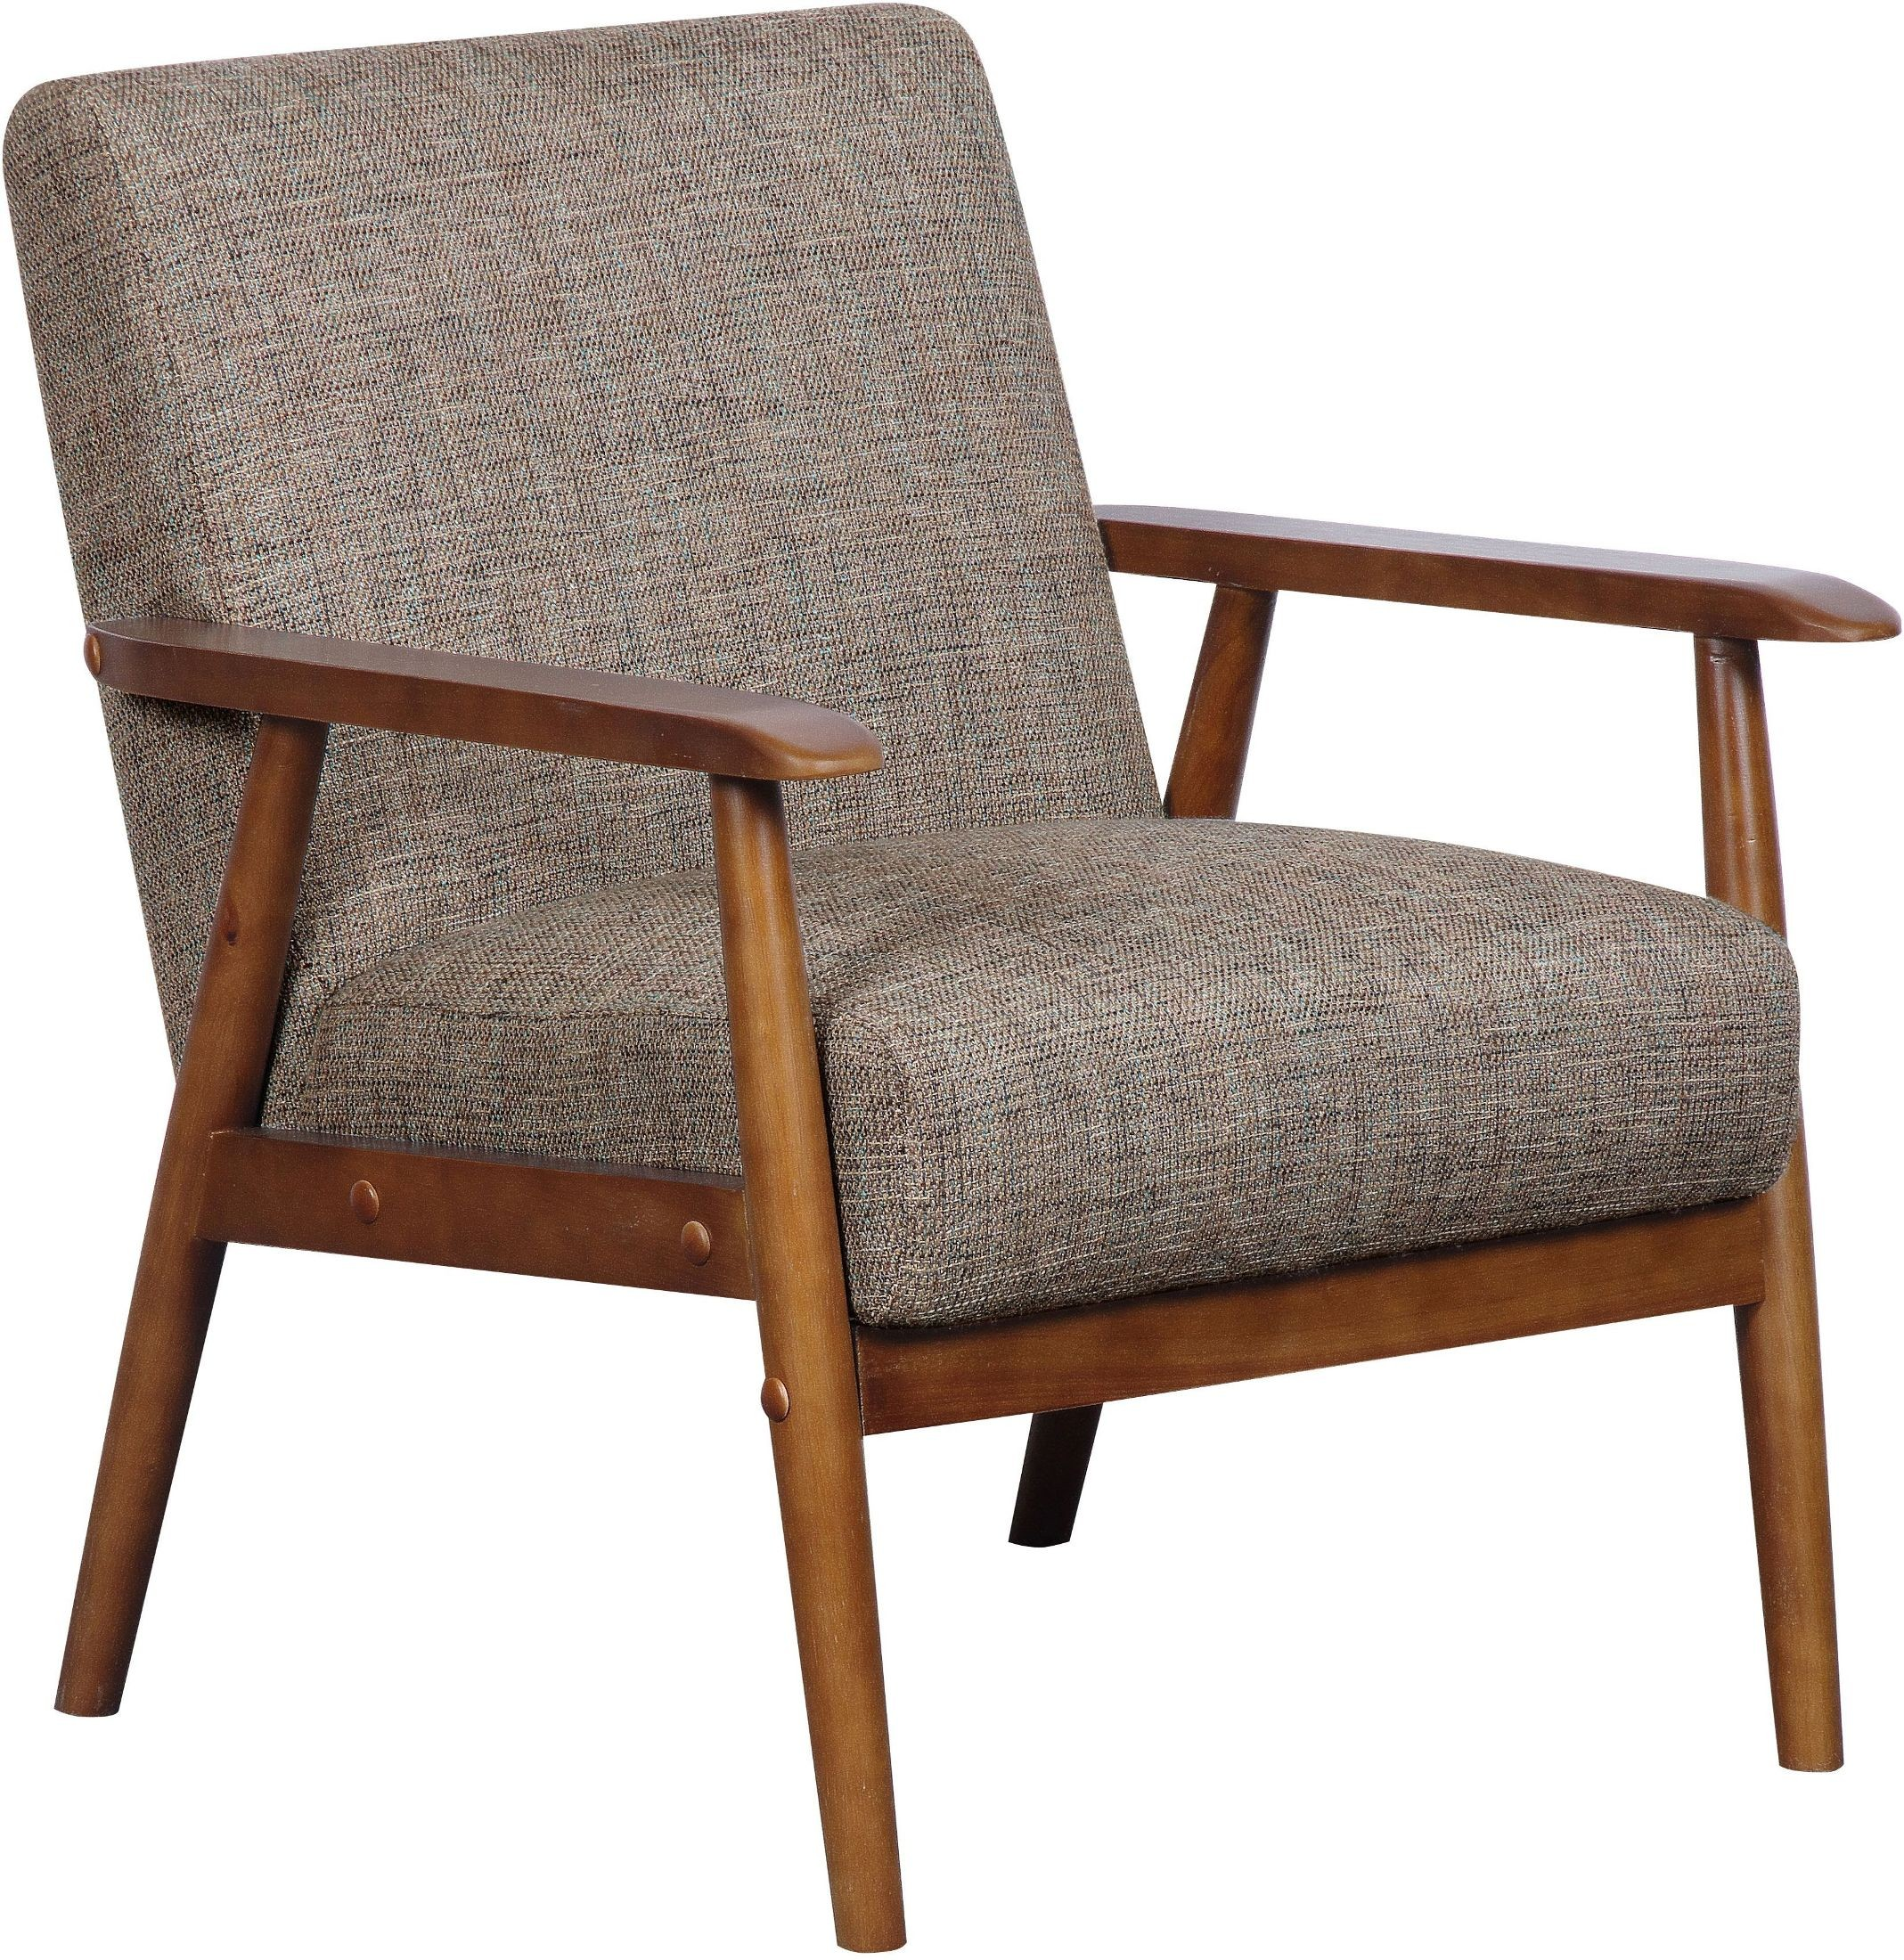 Calypso Waterfall Wood Frame Accent Chair from Pulaski